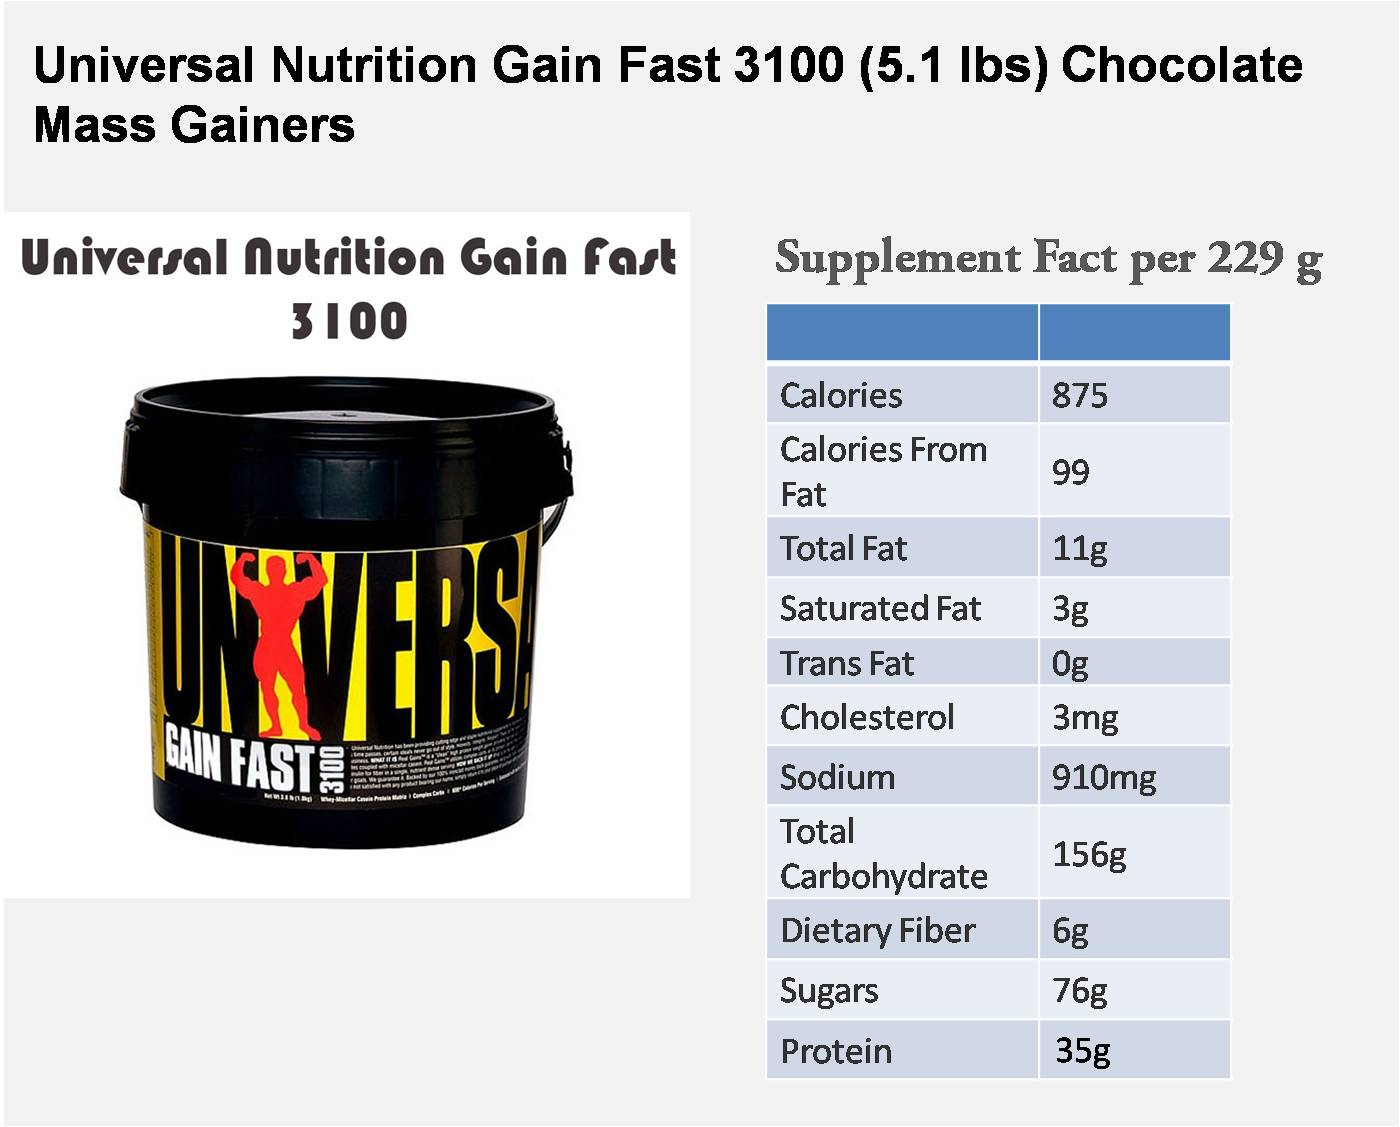 Universal Nutrition Gain Fast 3100 (5.1 lbs) Chocolate